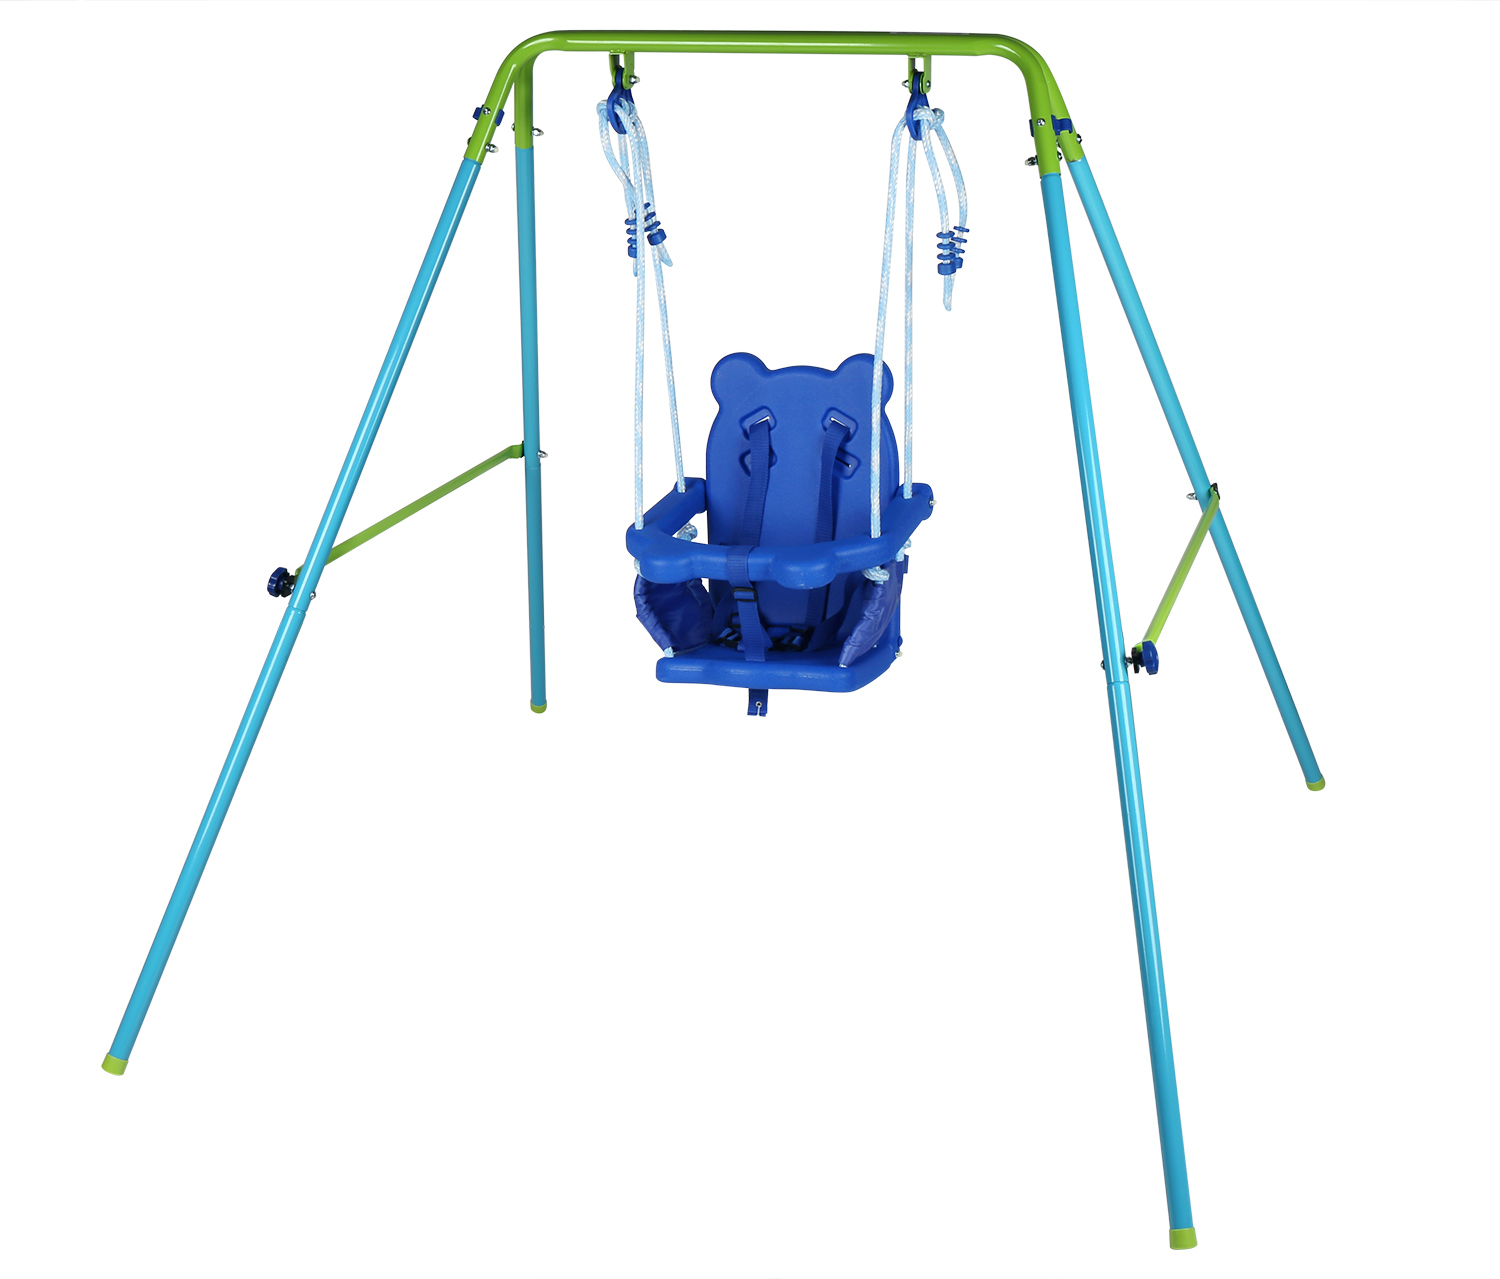 Folding Toddler Baby Swing With Seat Kids Best Gift Garden Yard Play Toy Outdoor by HLC